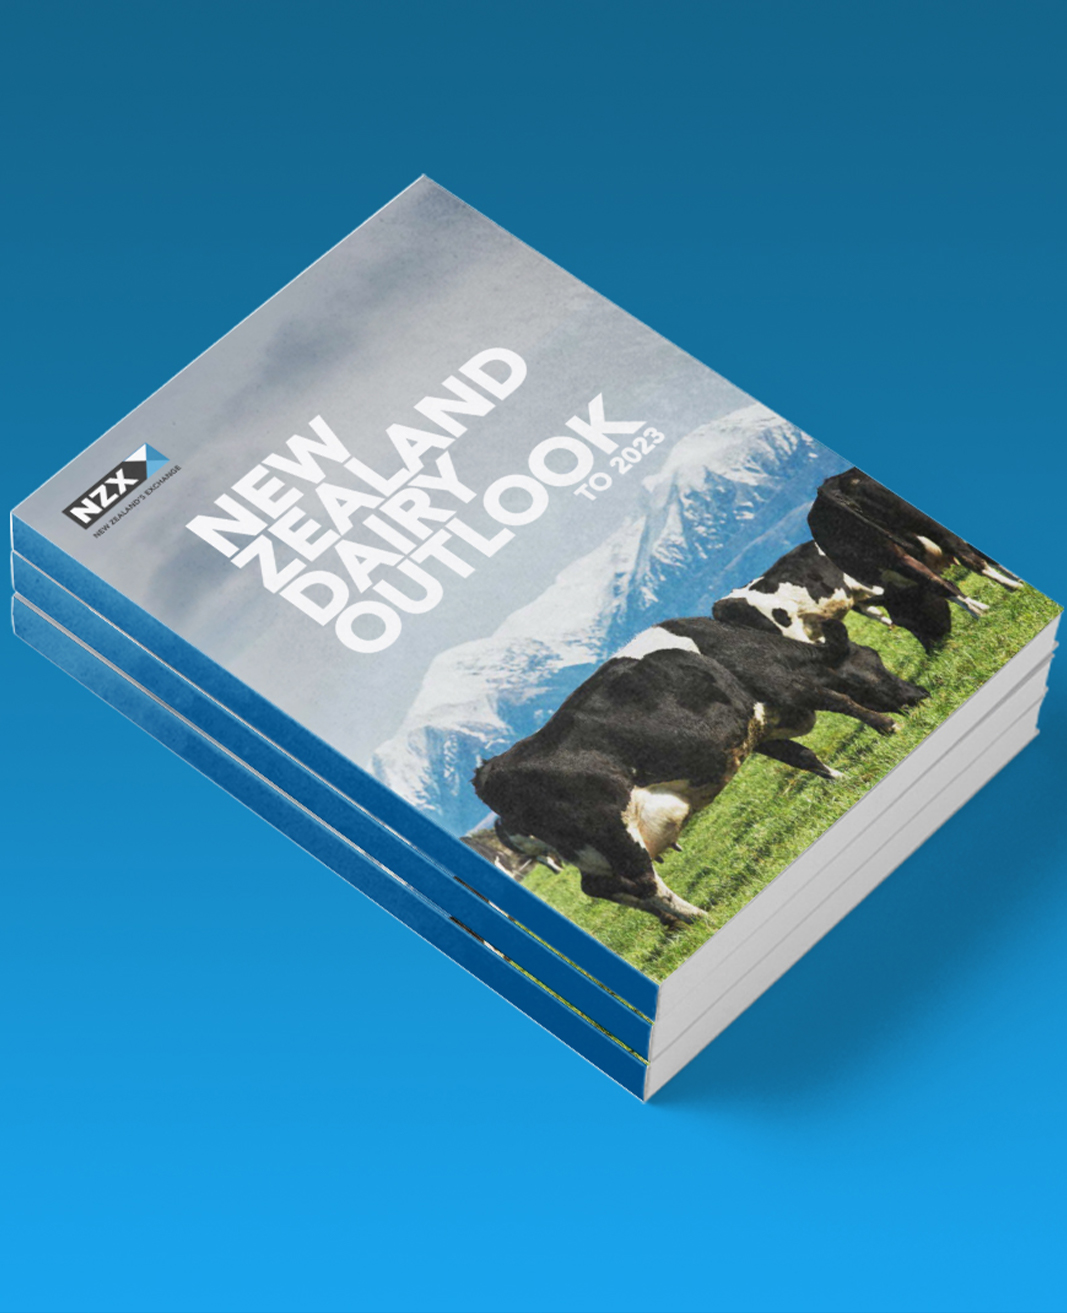 An image showing 3 books for the NZX NZ dairy outlook on a blue background